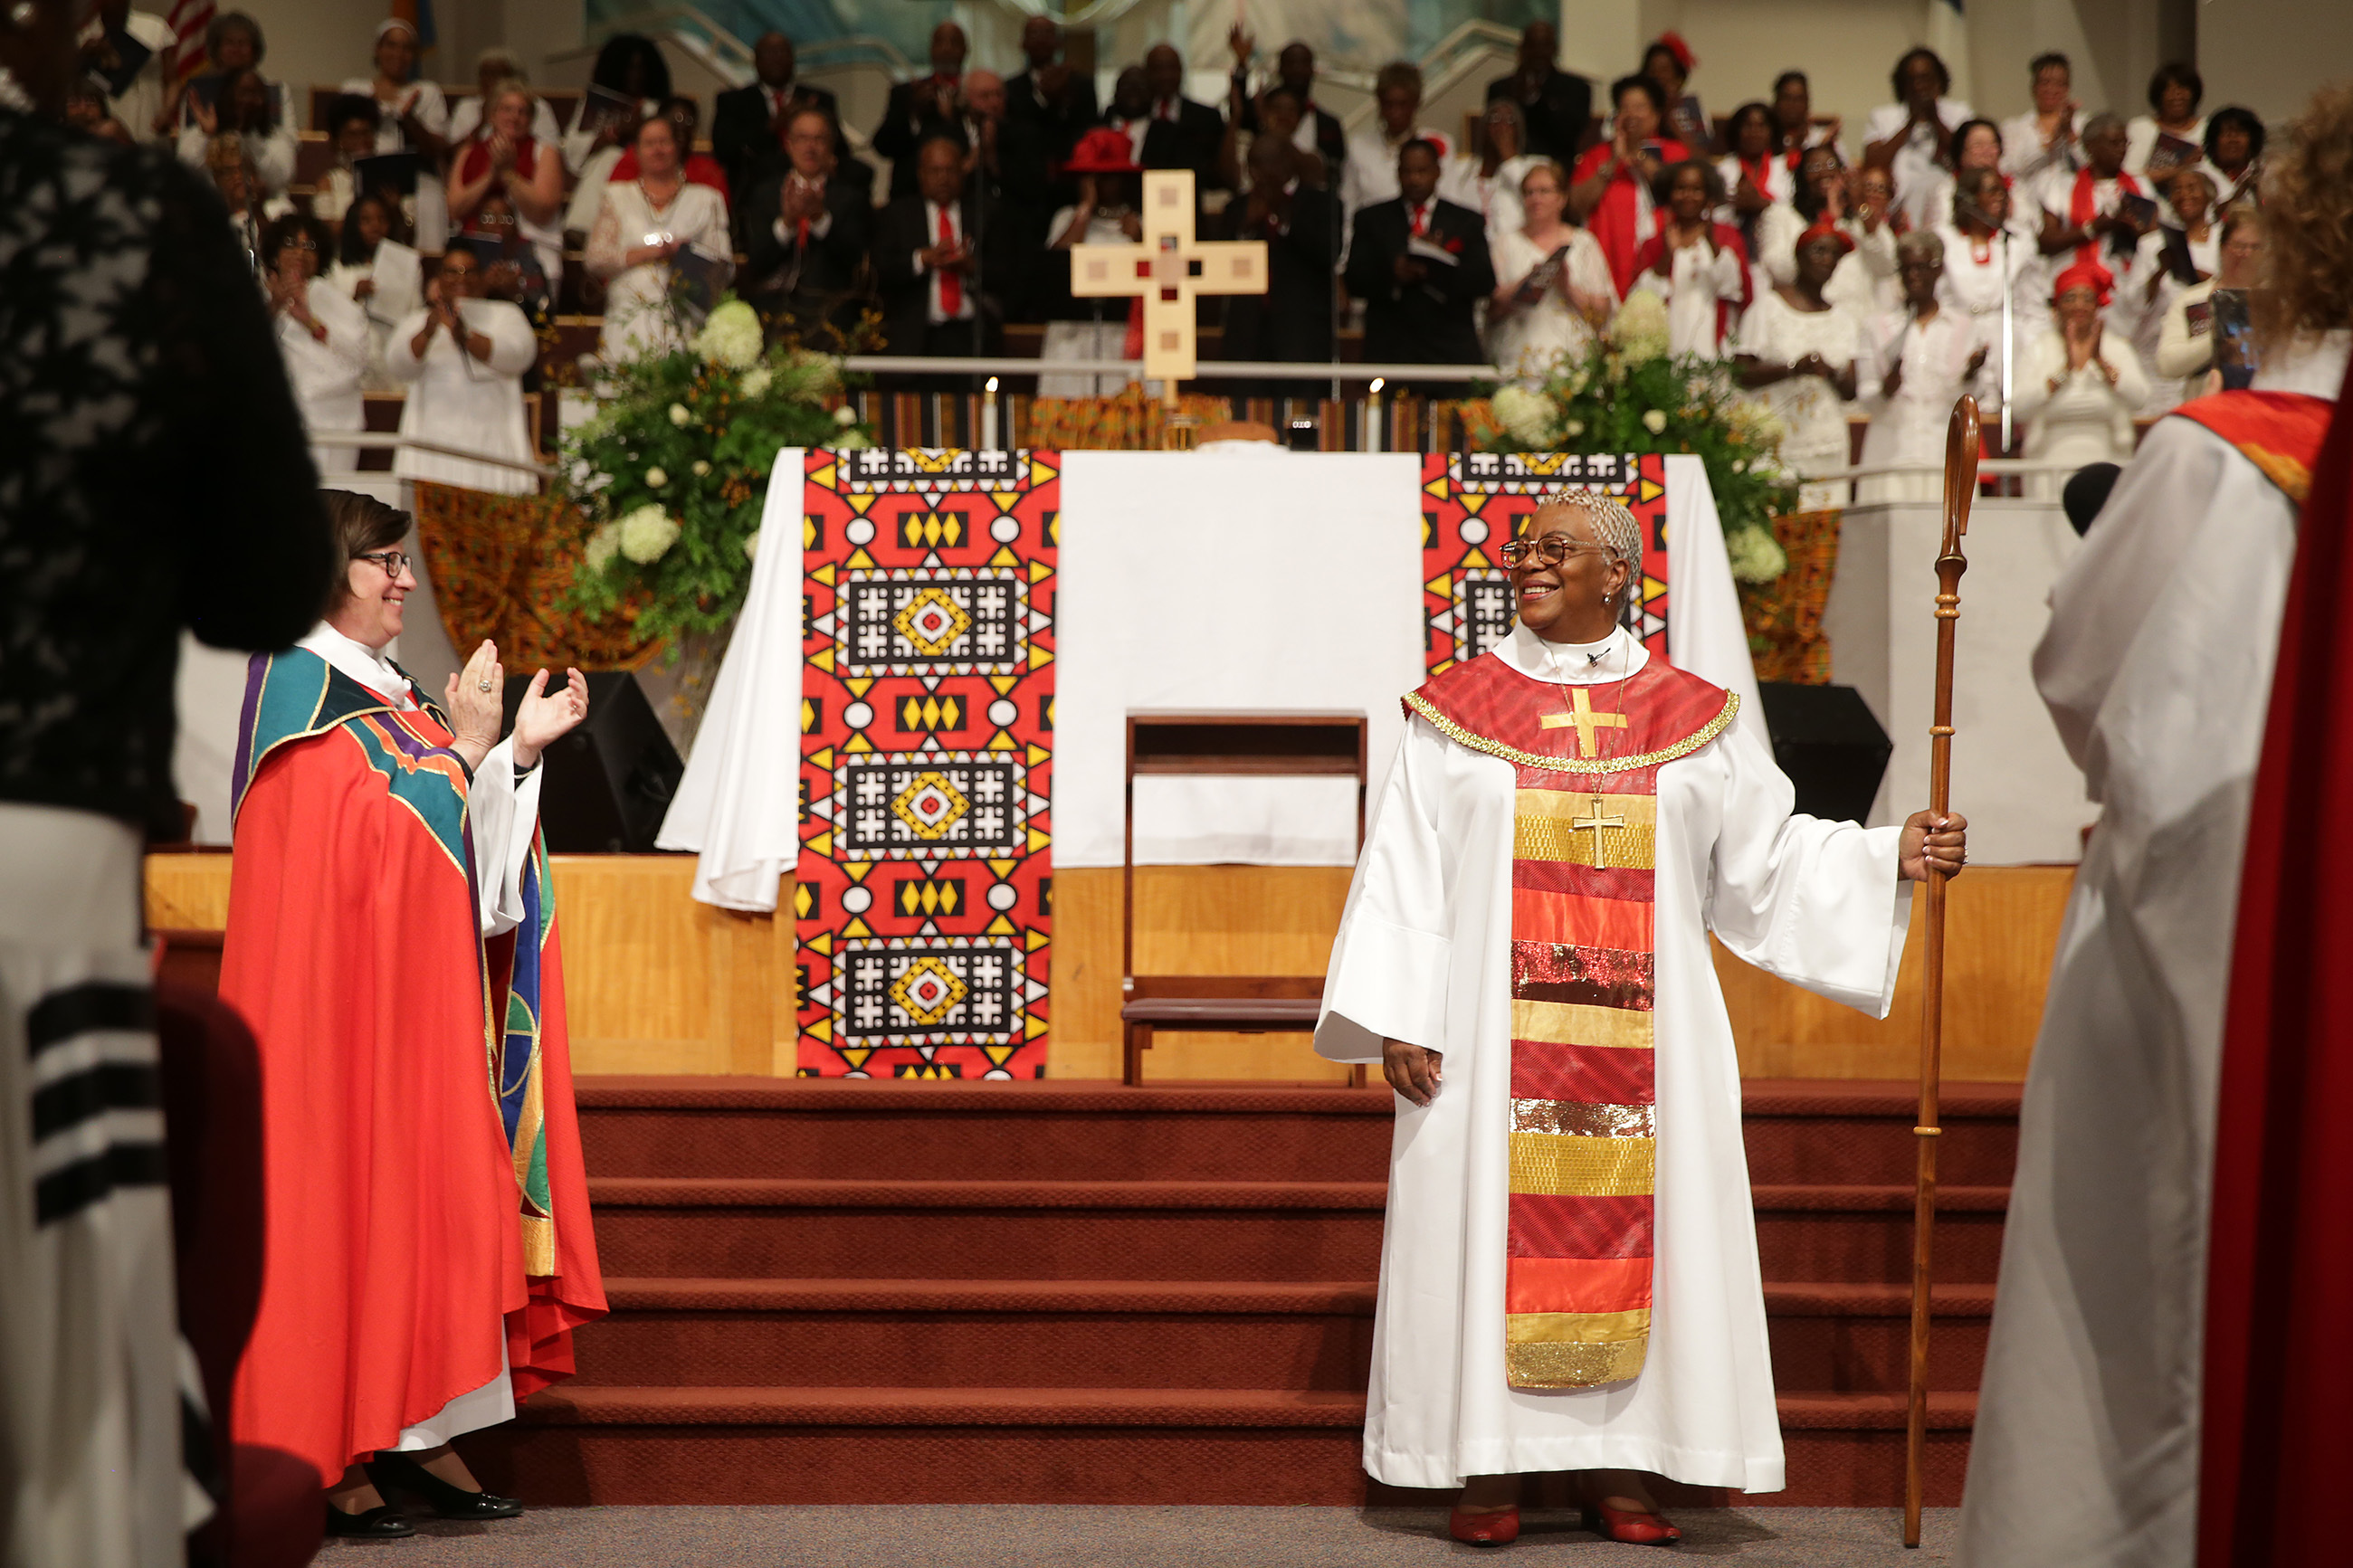 The Rev. Elizabeth Eaton (left) applauds as Bishop Davenport is installed.